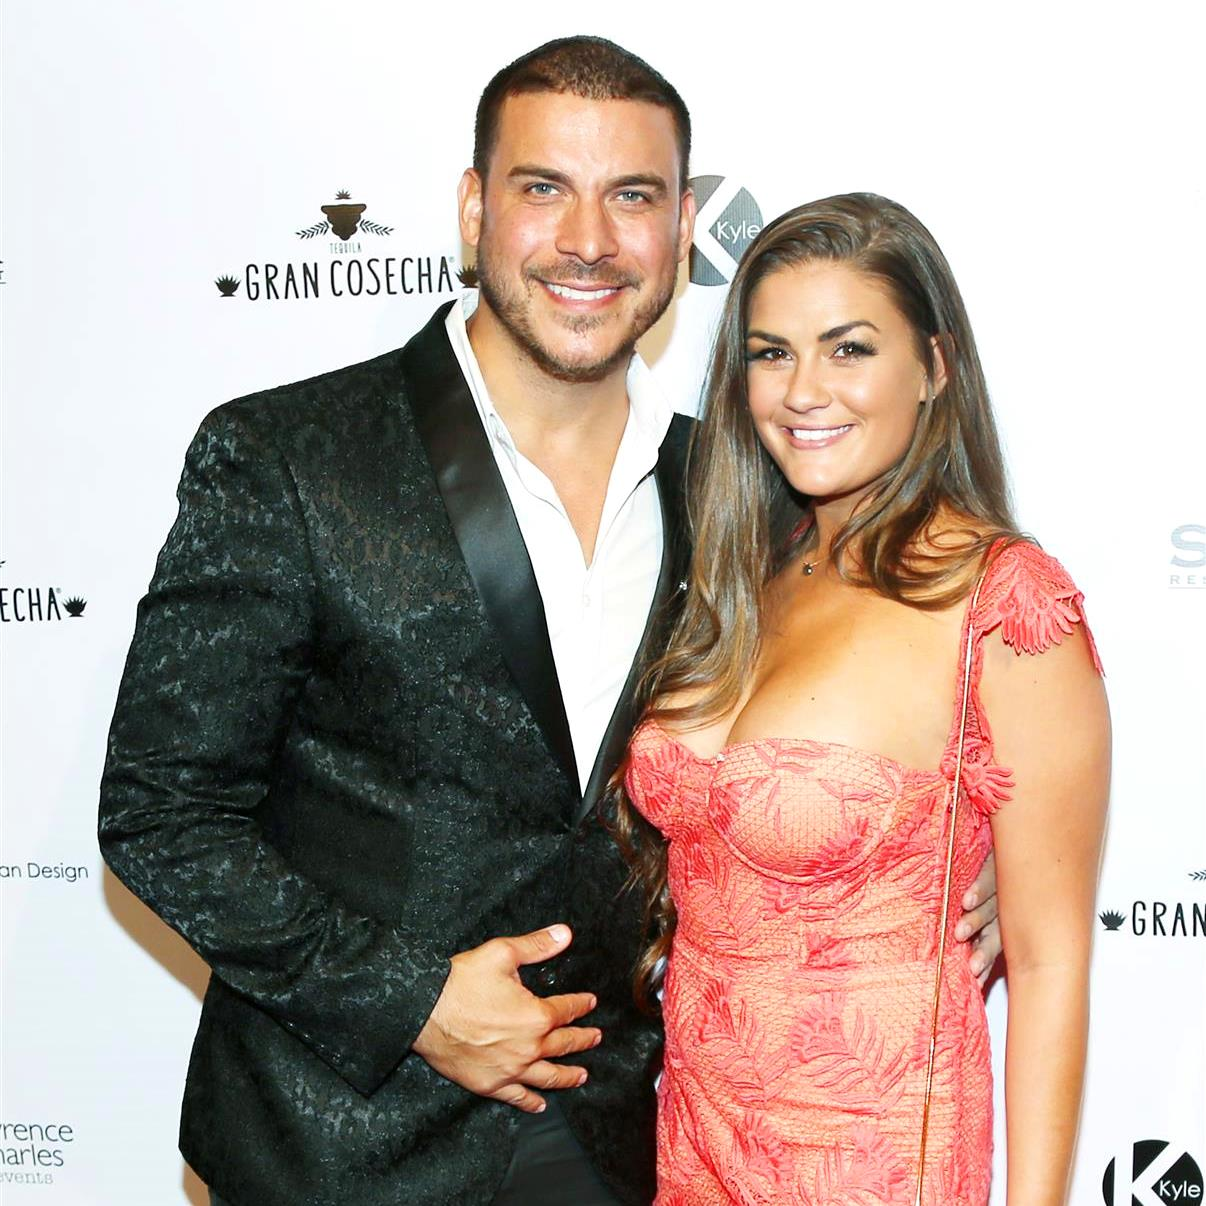 Are Brittany Cartwright and Jax Taylor Engaged